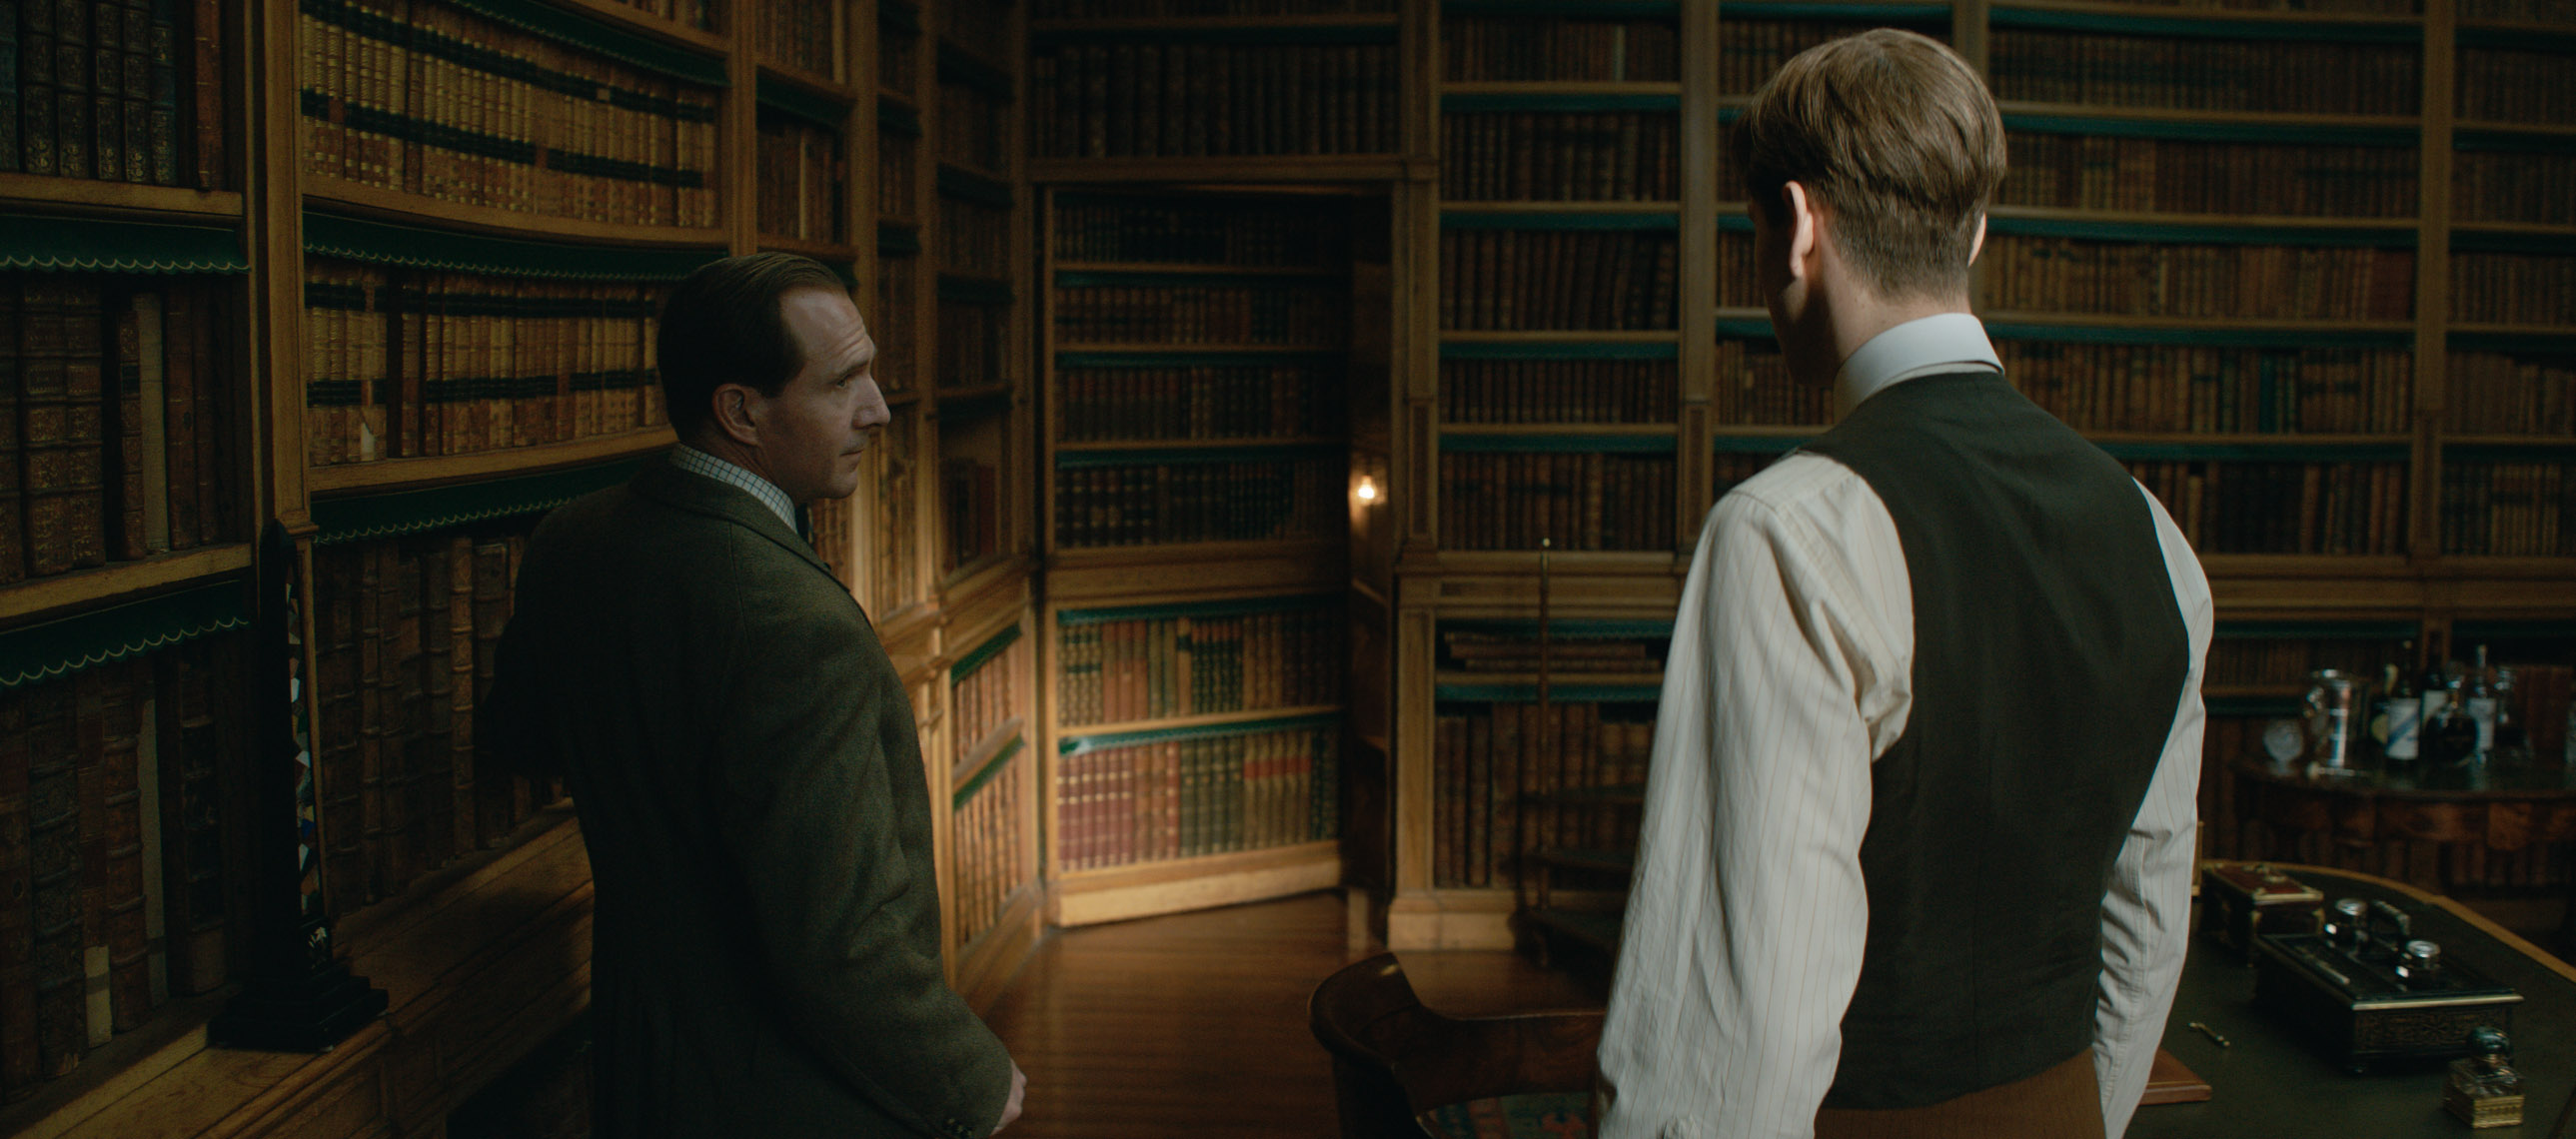 Ralph Fiennes and Harris Dickinson in The King's Man (2021)